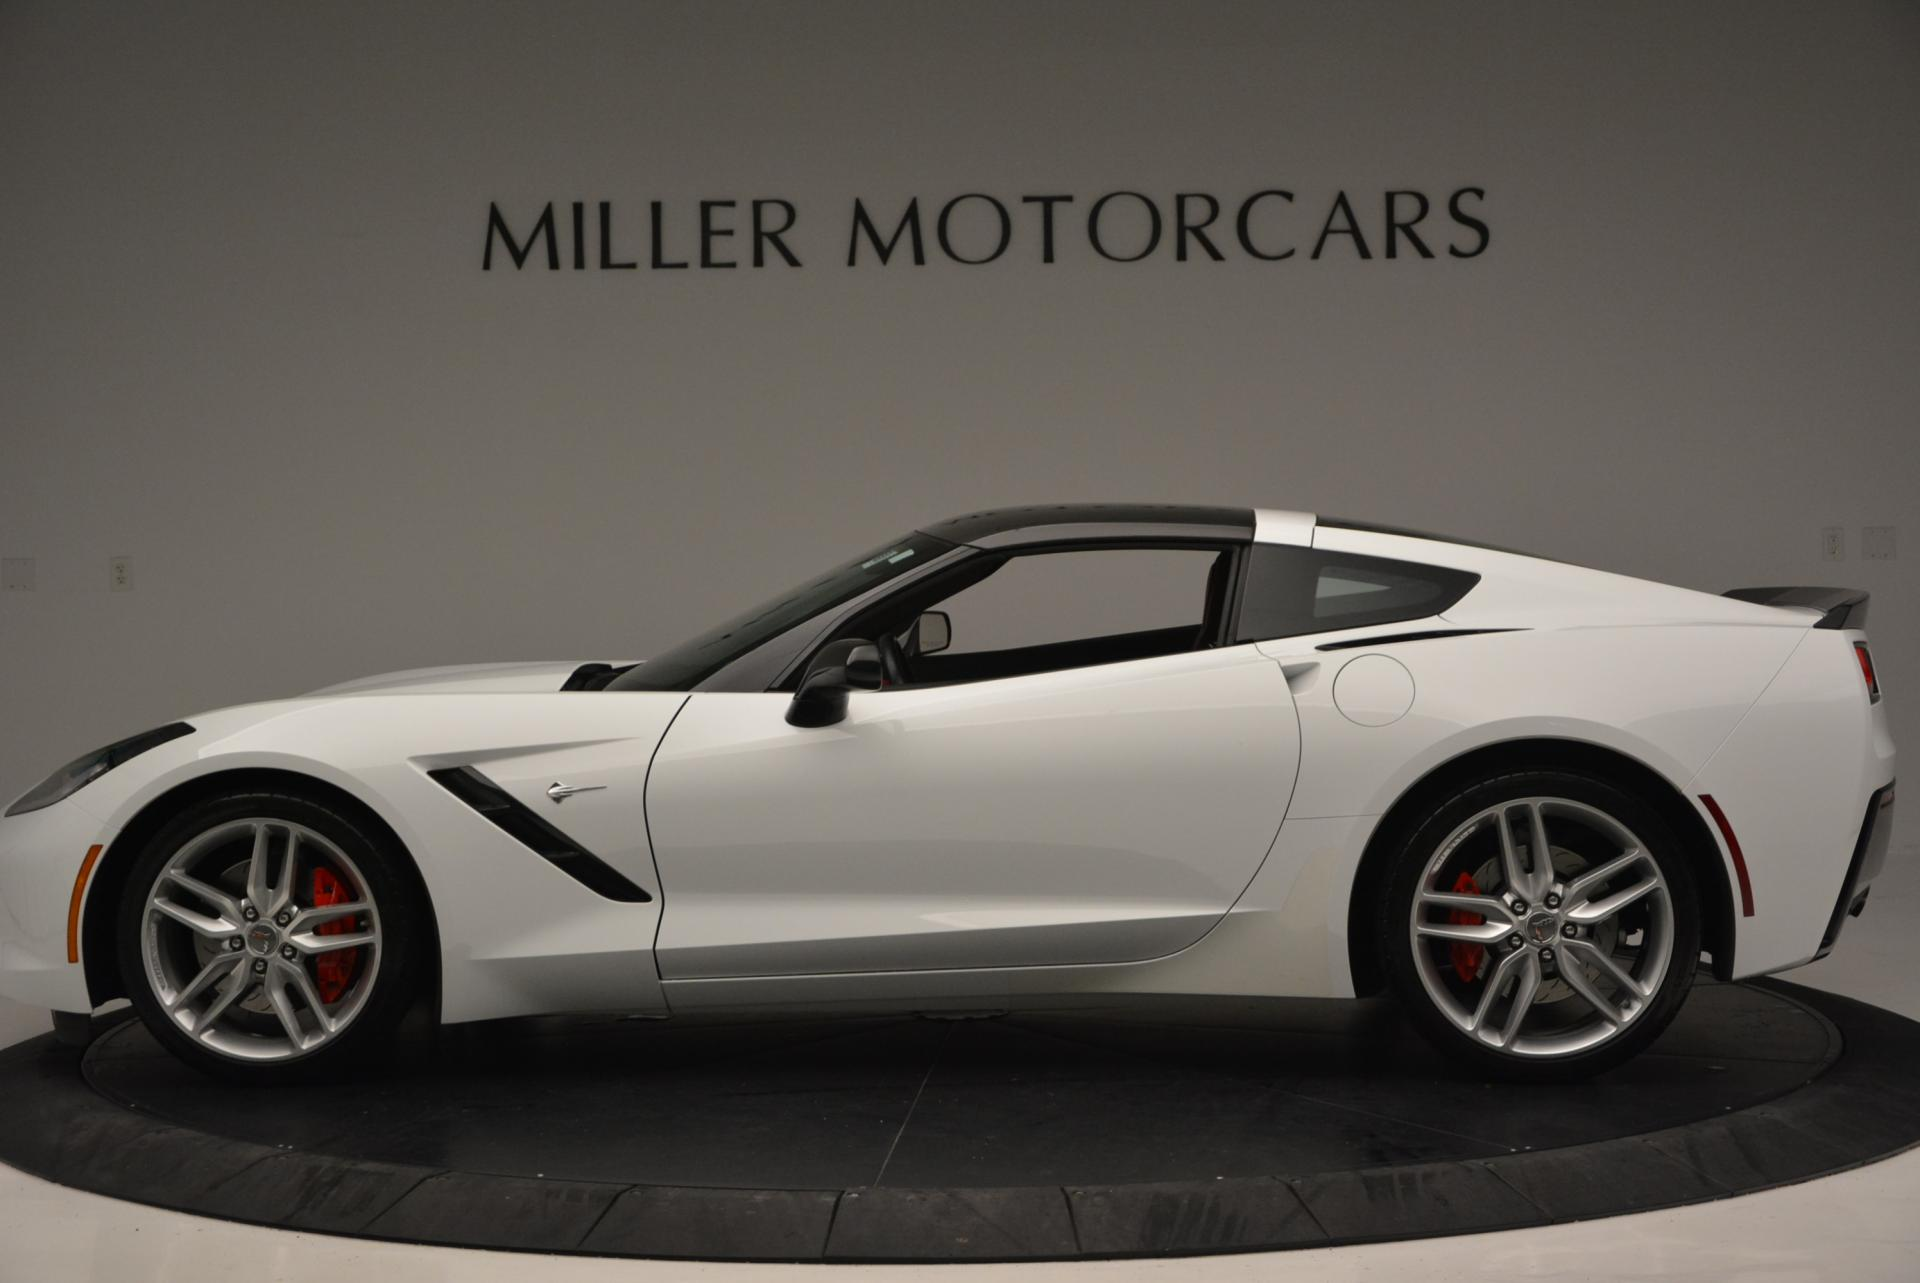 Used 2014 Chevrolet Corvette Stingray Z51 For Sale In Greenwich, CT. Alfa Romeo of Greenwich, 7089 529_p5